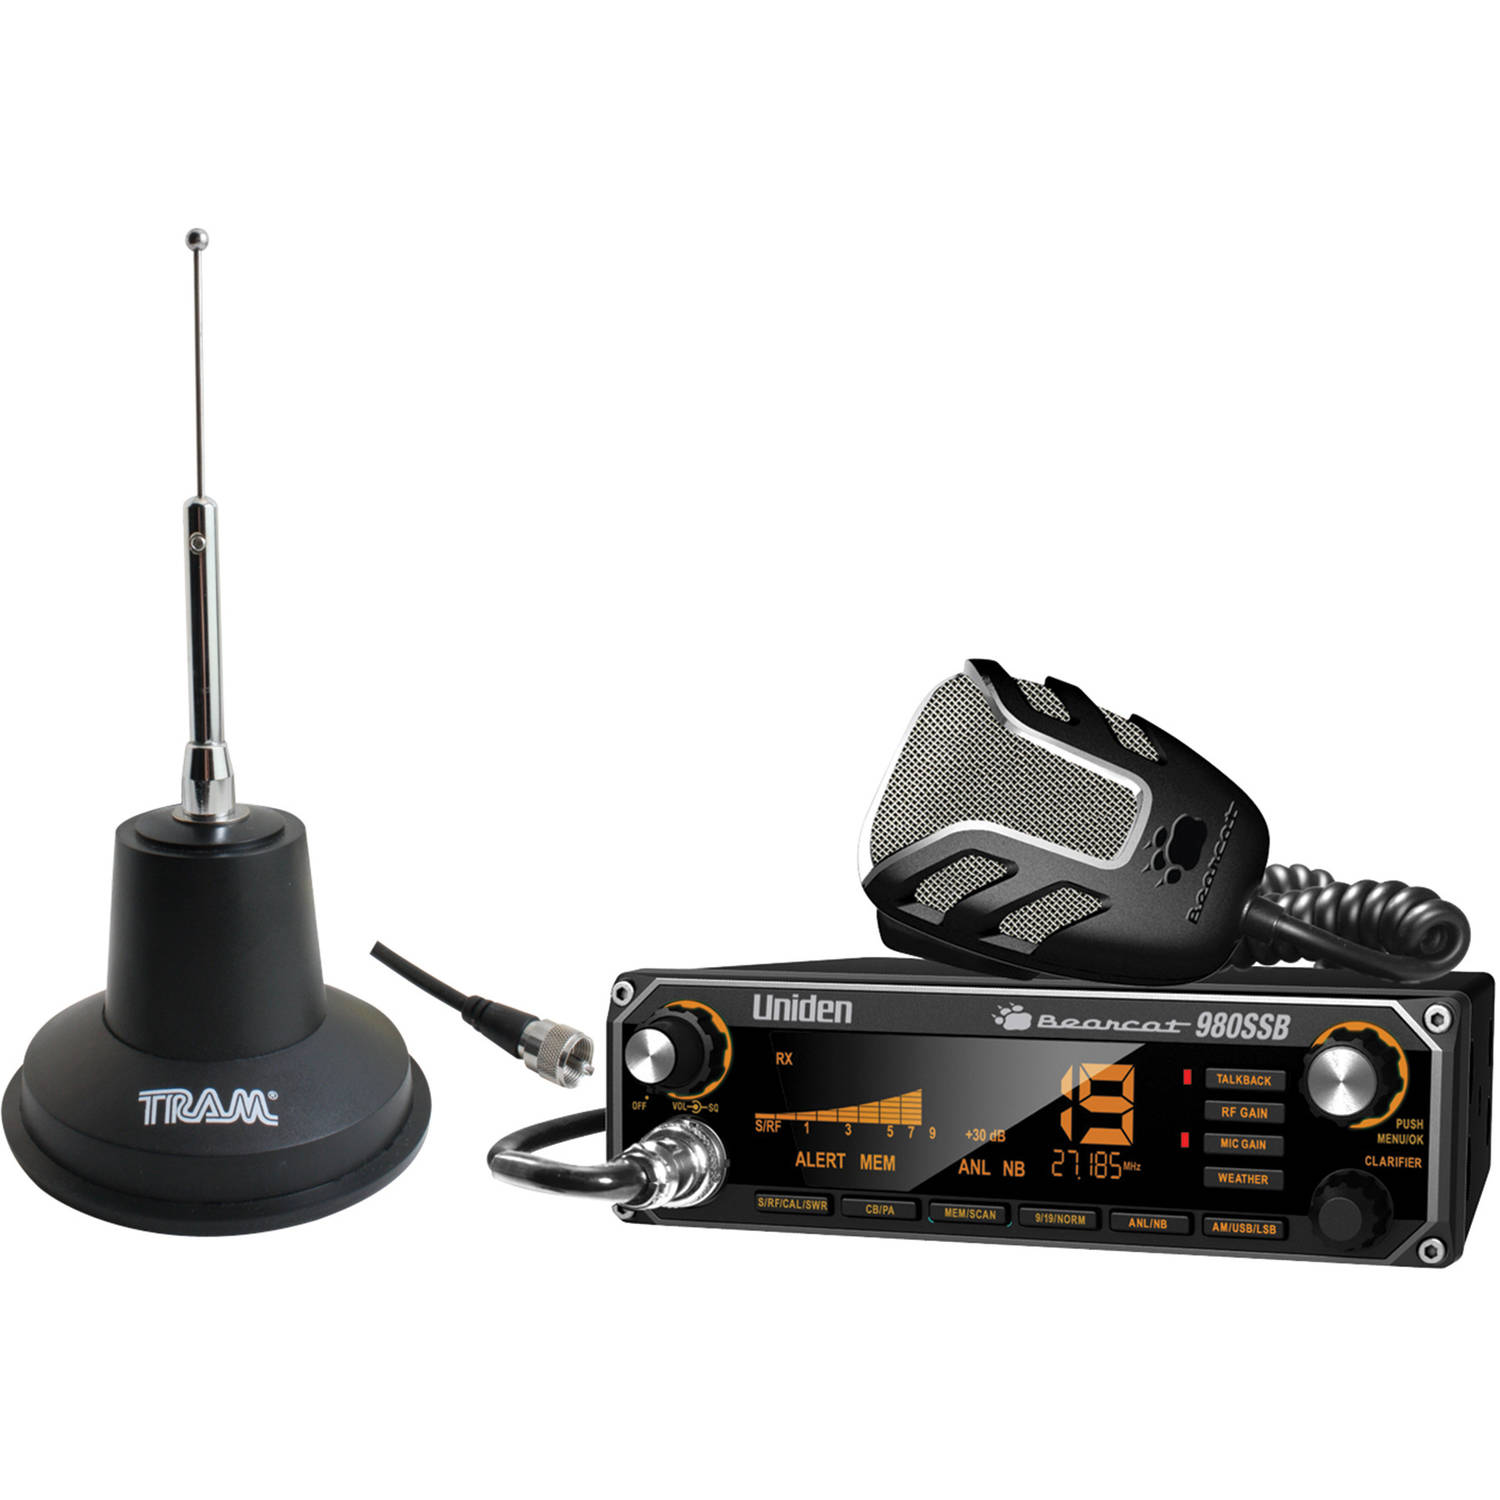 Uniden Bearcat 980SSB CB Radio With SSB and Tram 3500 Heavy-Duty Magnet-Mount CB Antenna Kit by Uniden